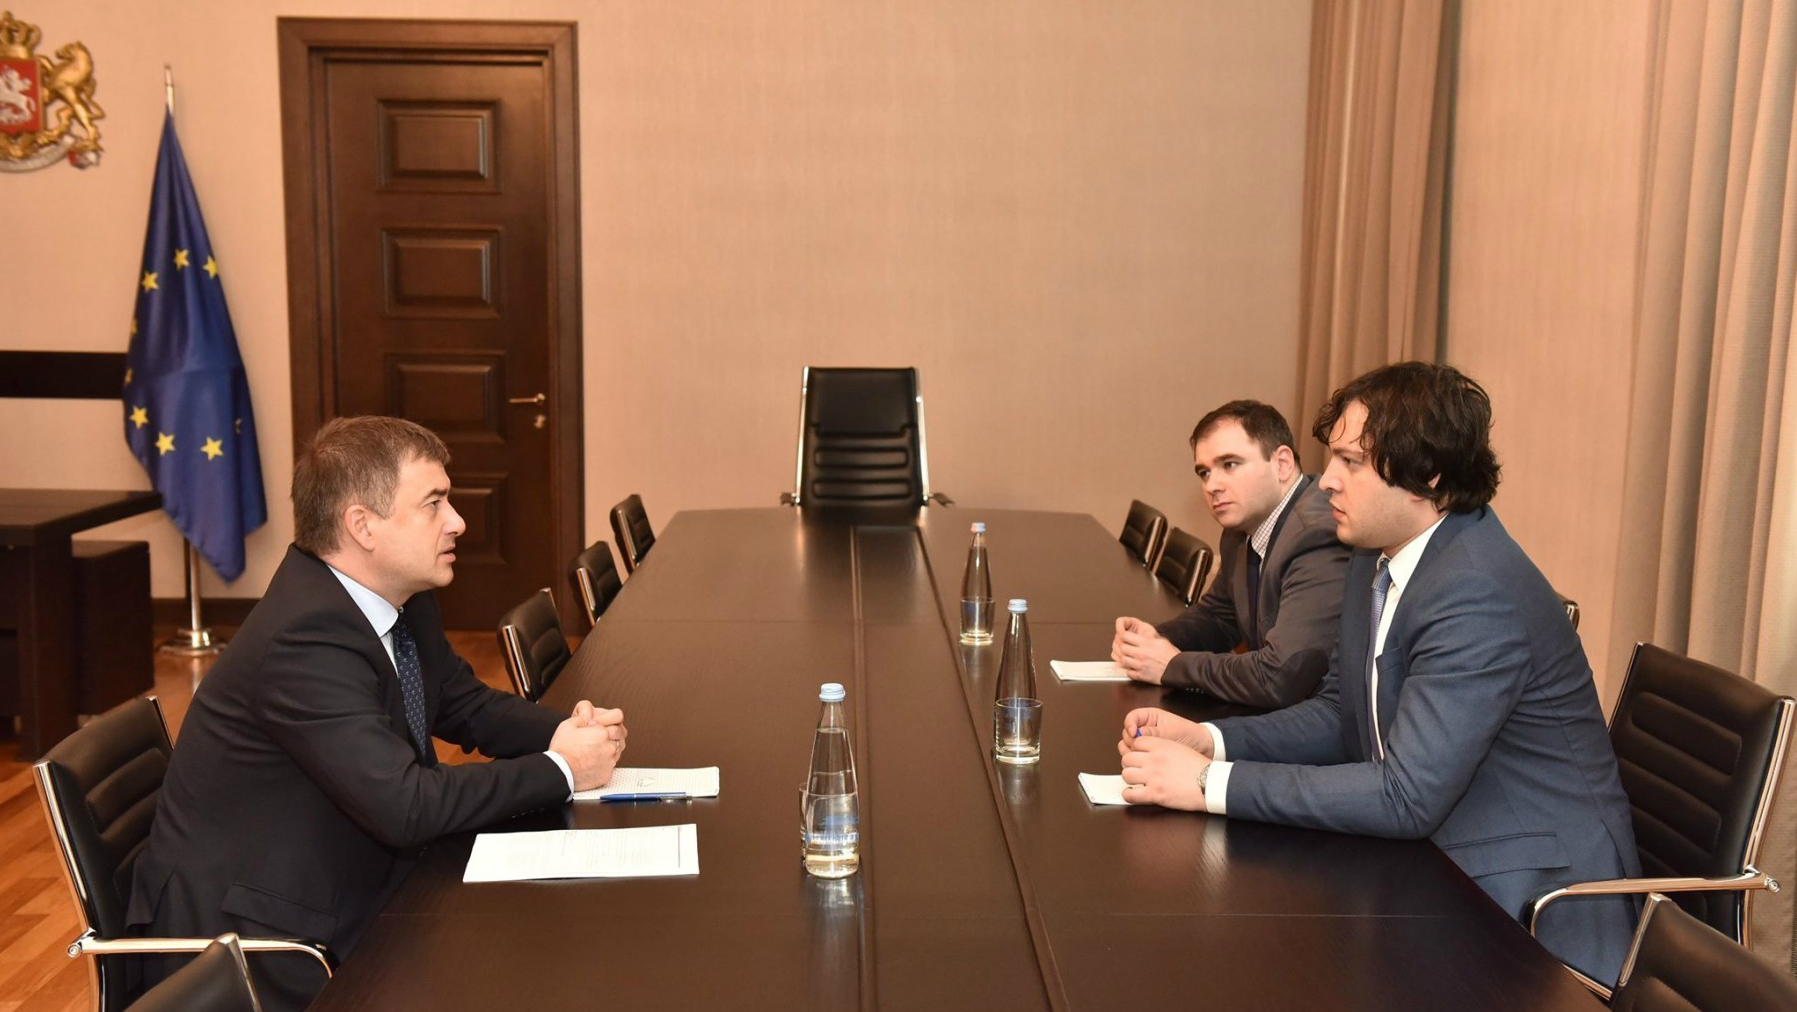 The Head of the Council of Europe Office in Georgia met with the Chairman of the Parliament